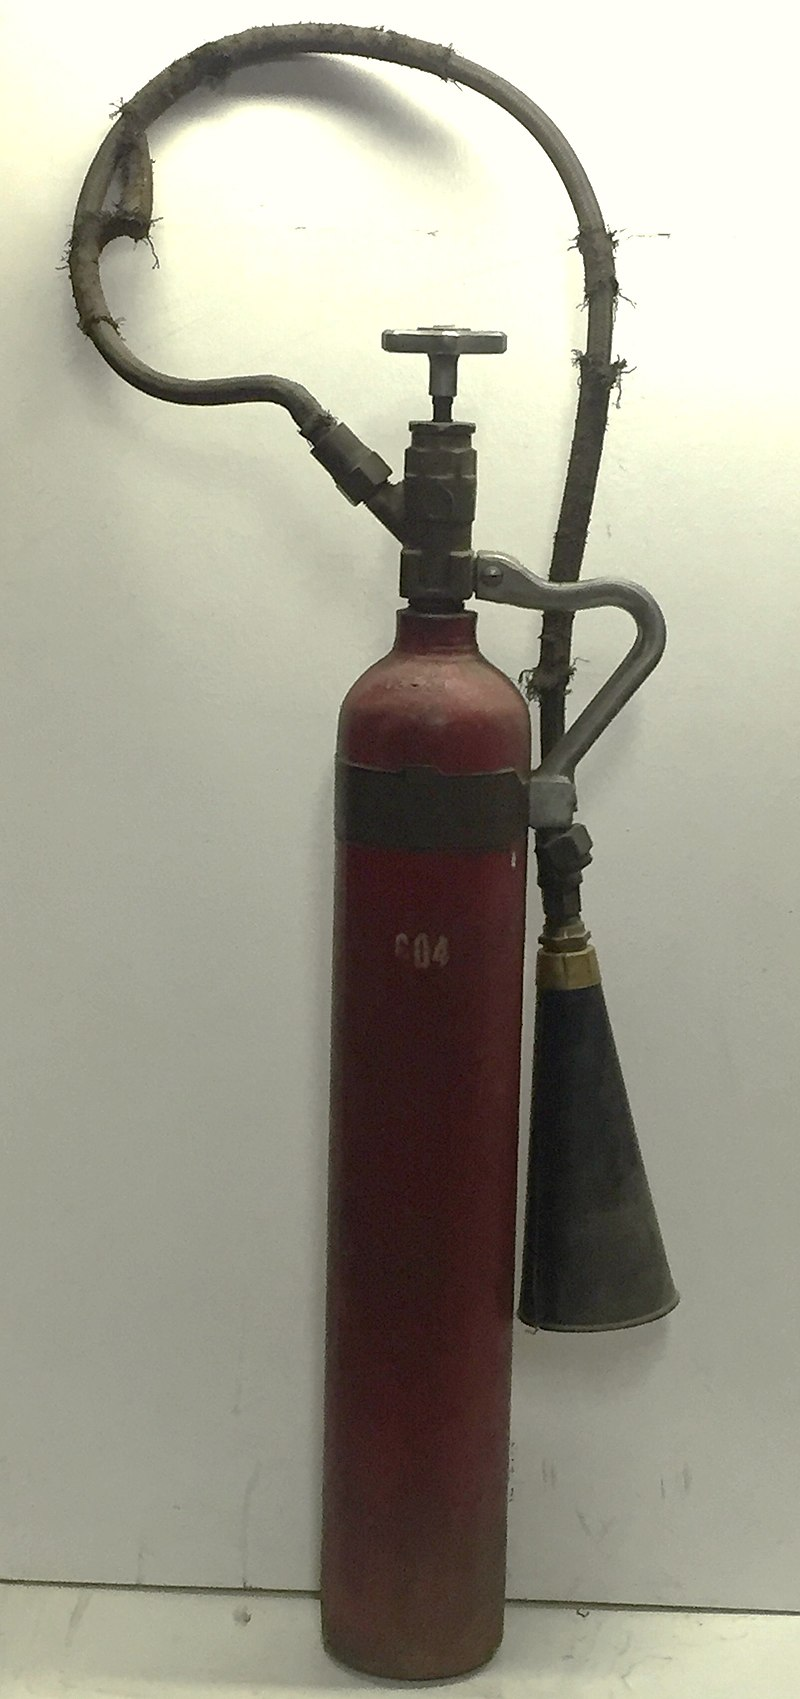 Walter Kidde 7.5lb. CO2 fire extinguisher made for Bell Telephone, 1928.jpg